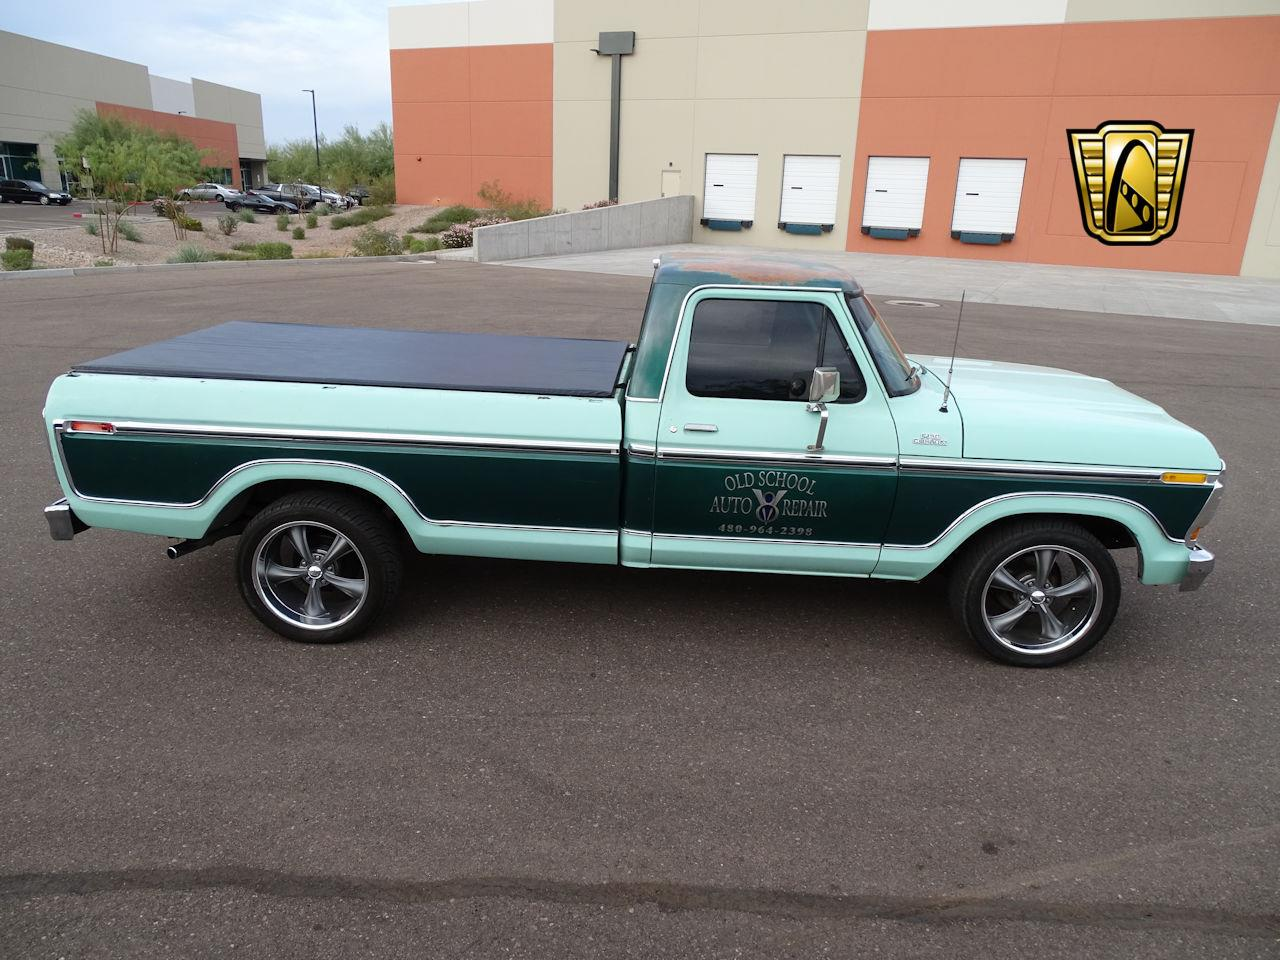 Large Picture of '78 F150 located in Arizona - $17,995.00 Offered by Gateway Classic Cars - Scottsdale - MEMV